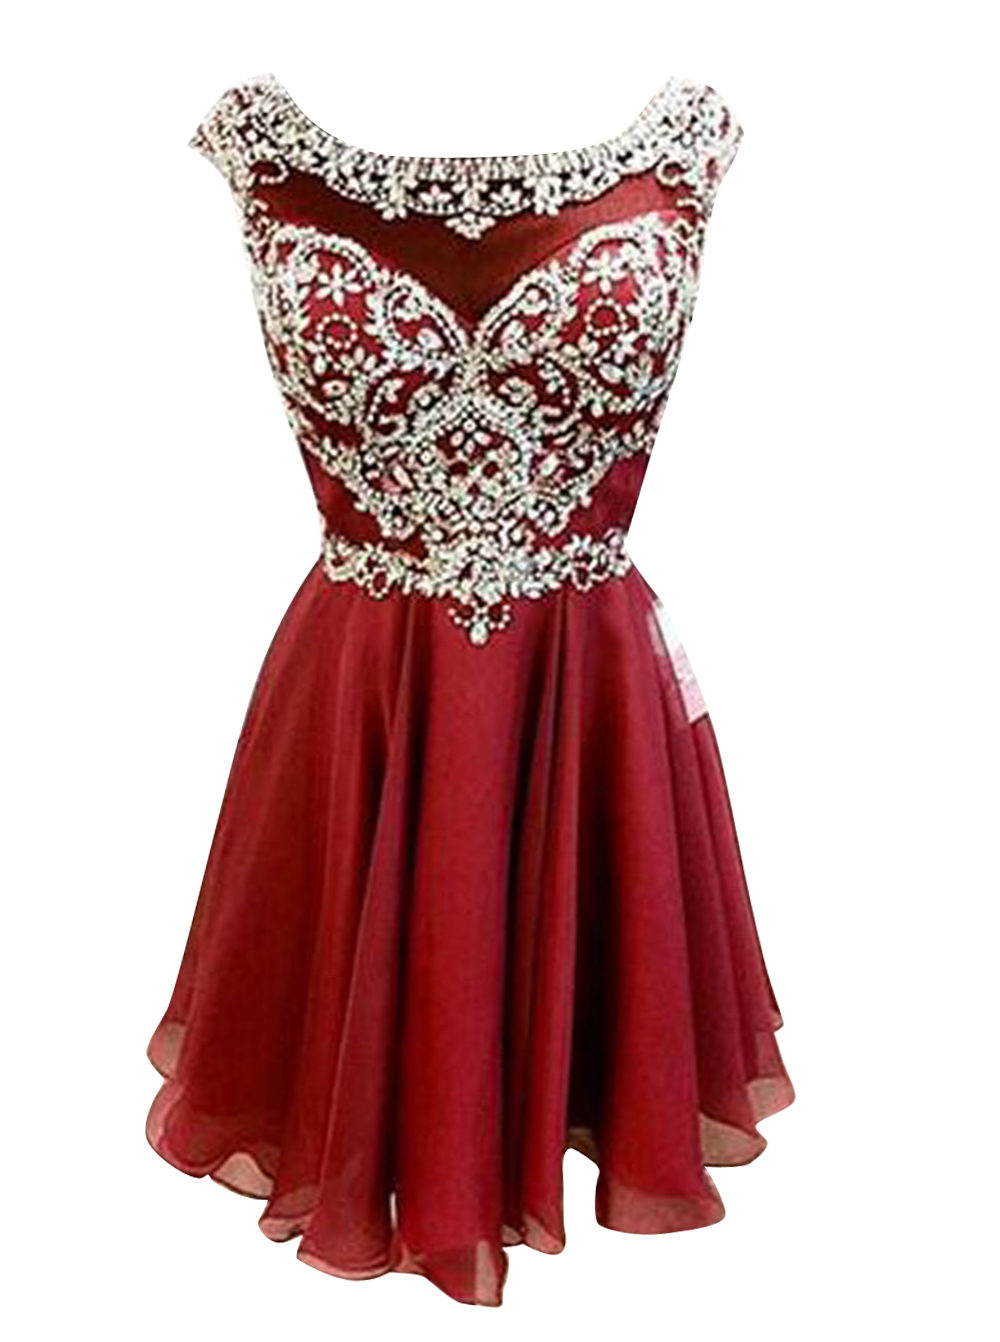 New Arrival Bateau Cap Sleeves Short Wine Homecoming Dress with Beading, Wine red